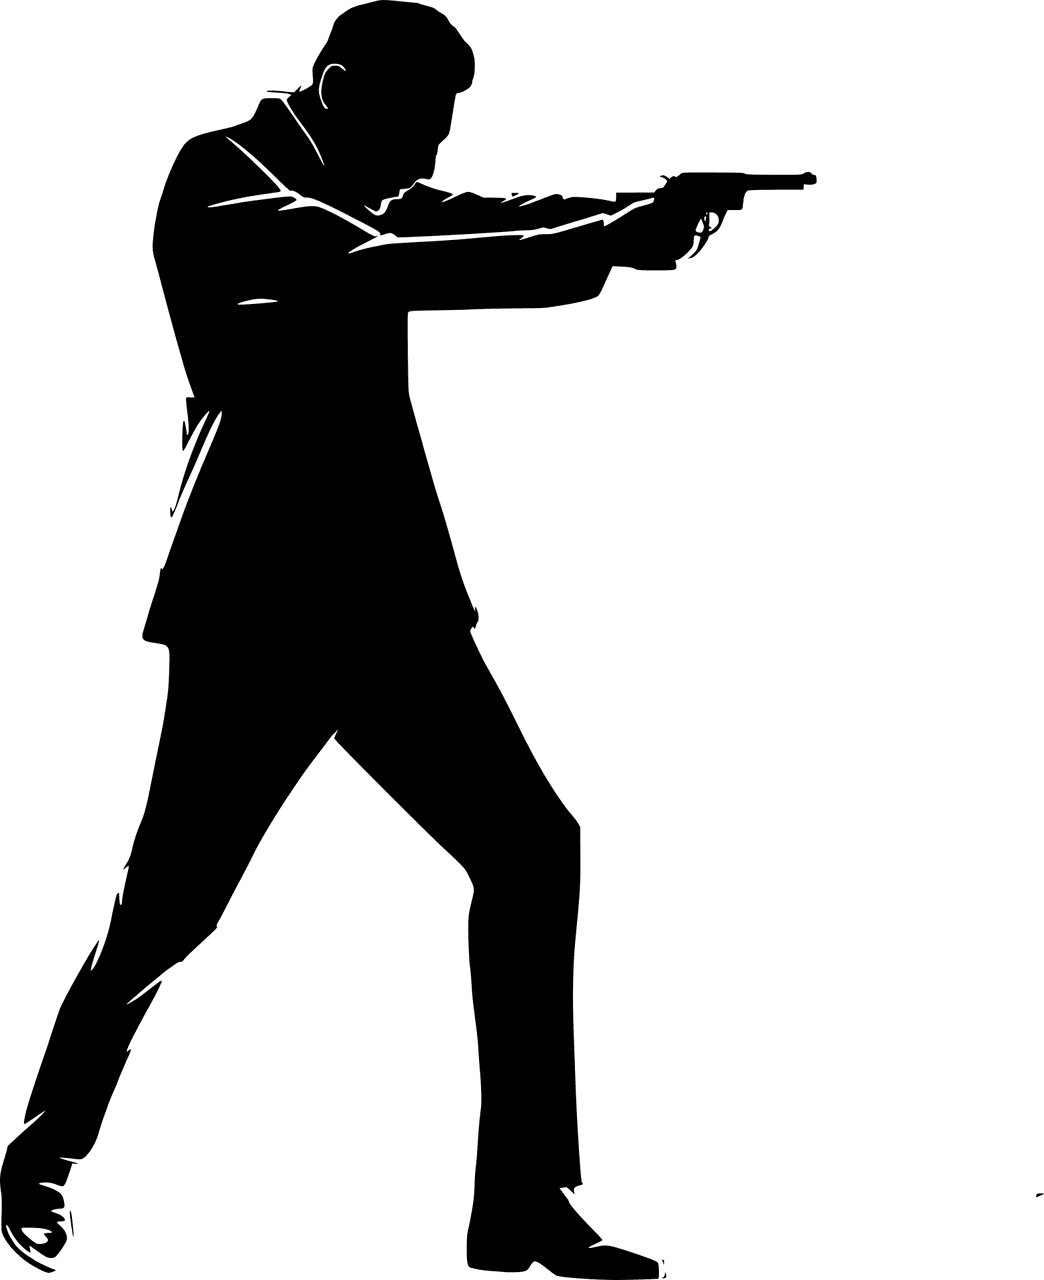 A silhouette of a man pointing a gun. | Source: Pixabay